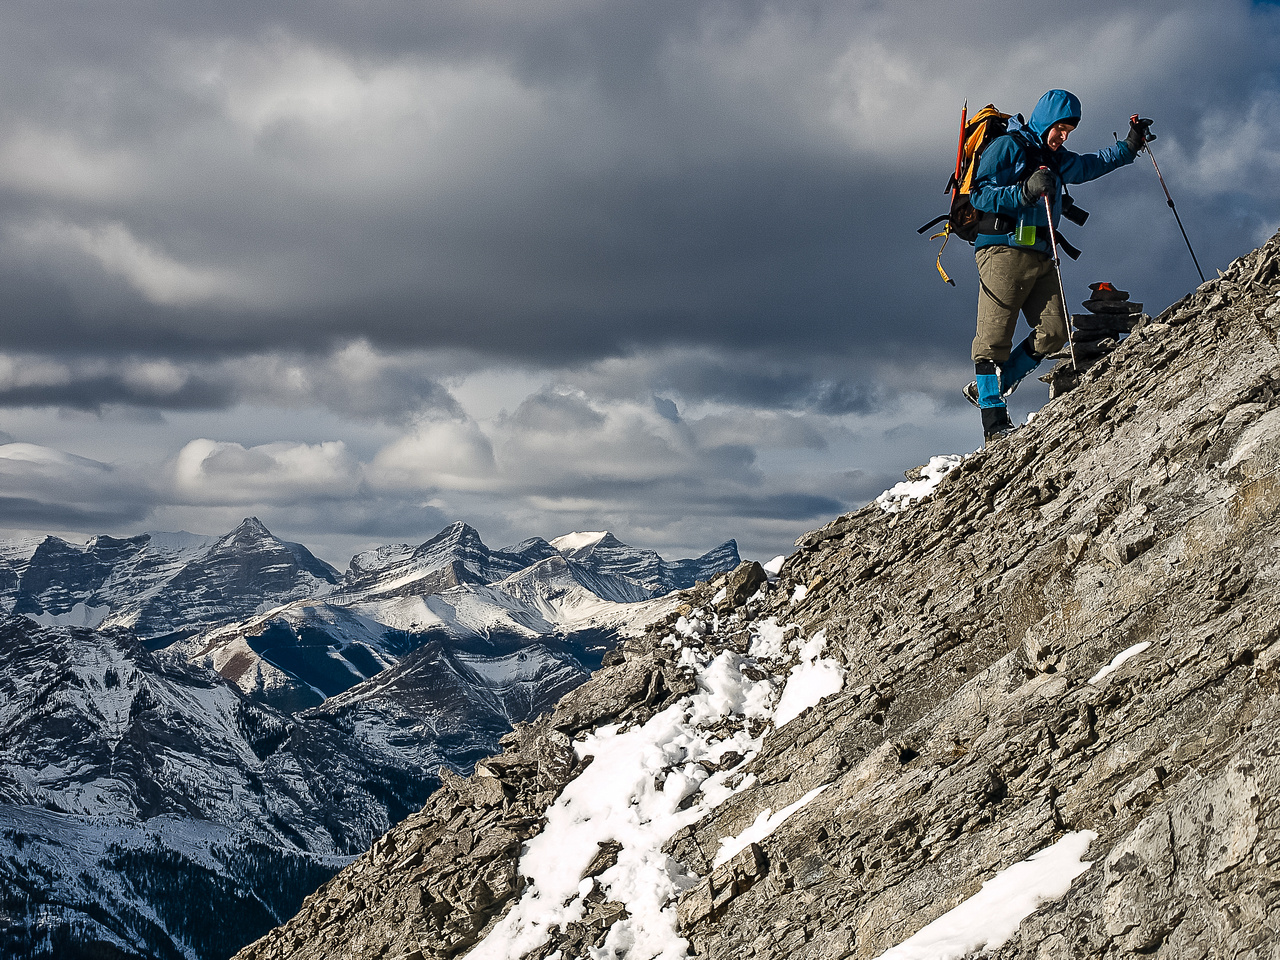 Wietse ascends to the summit.